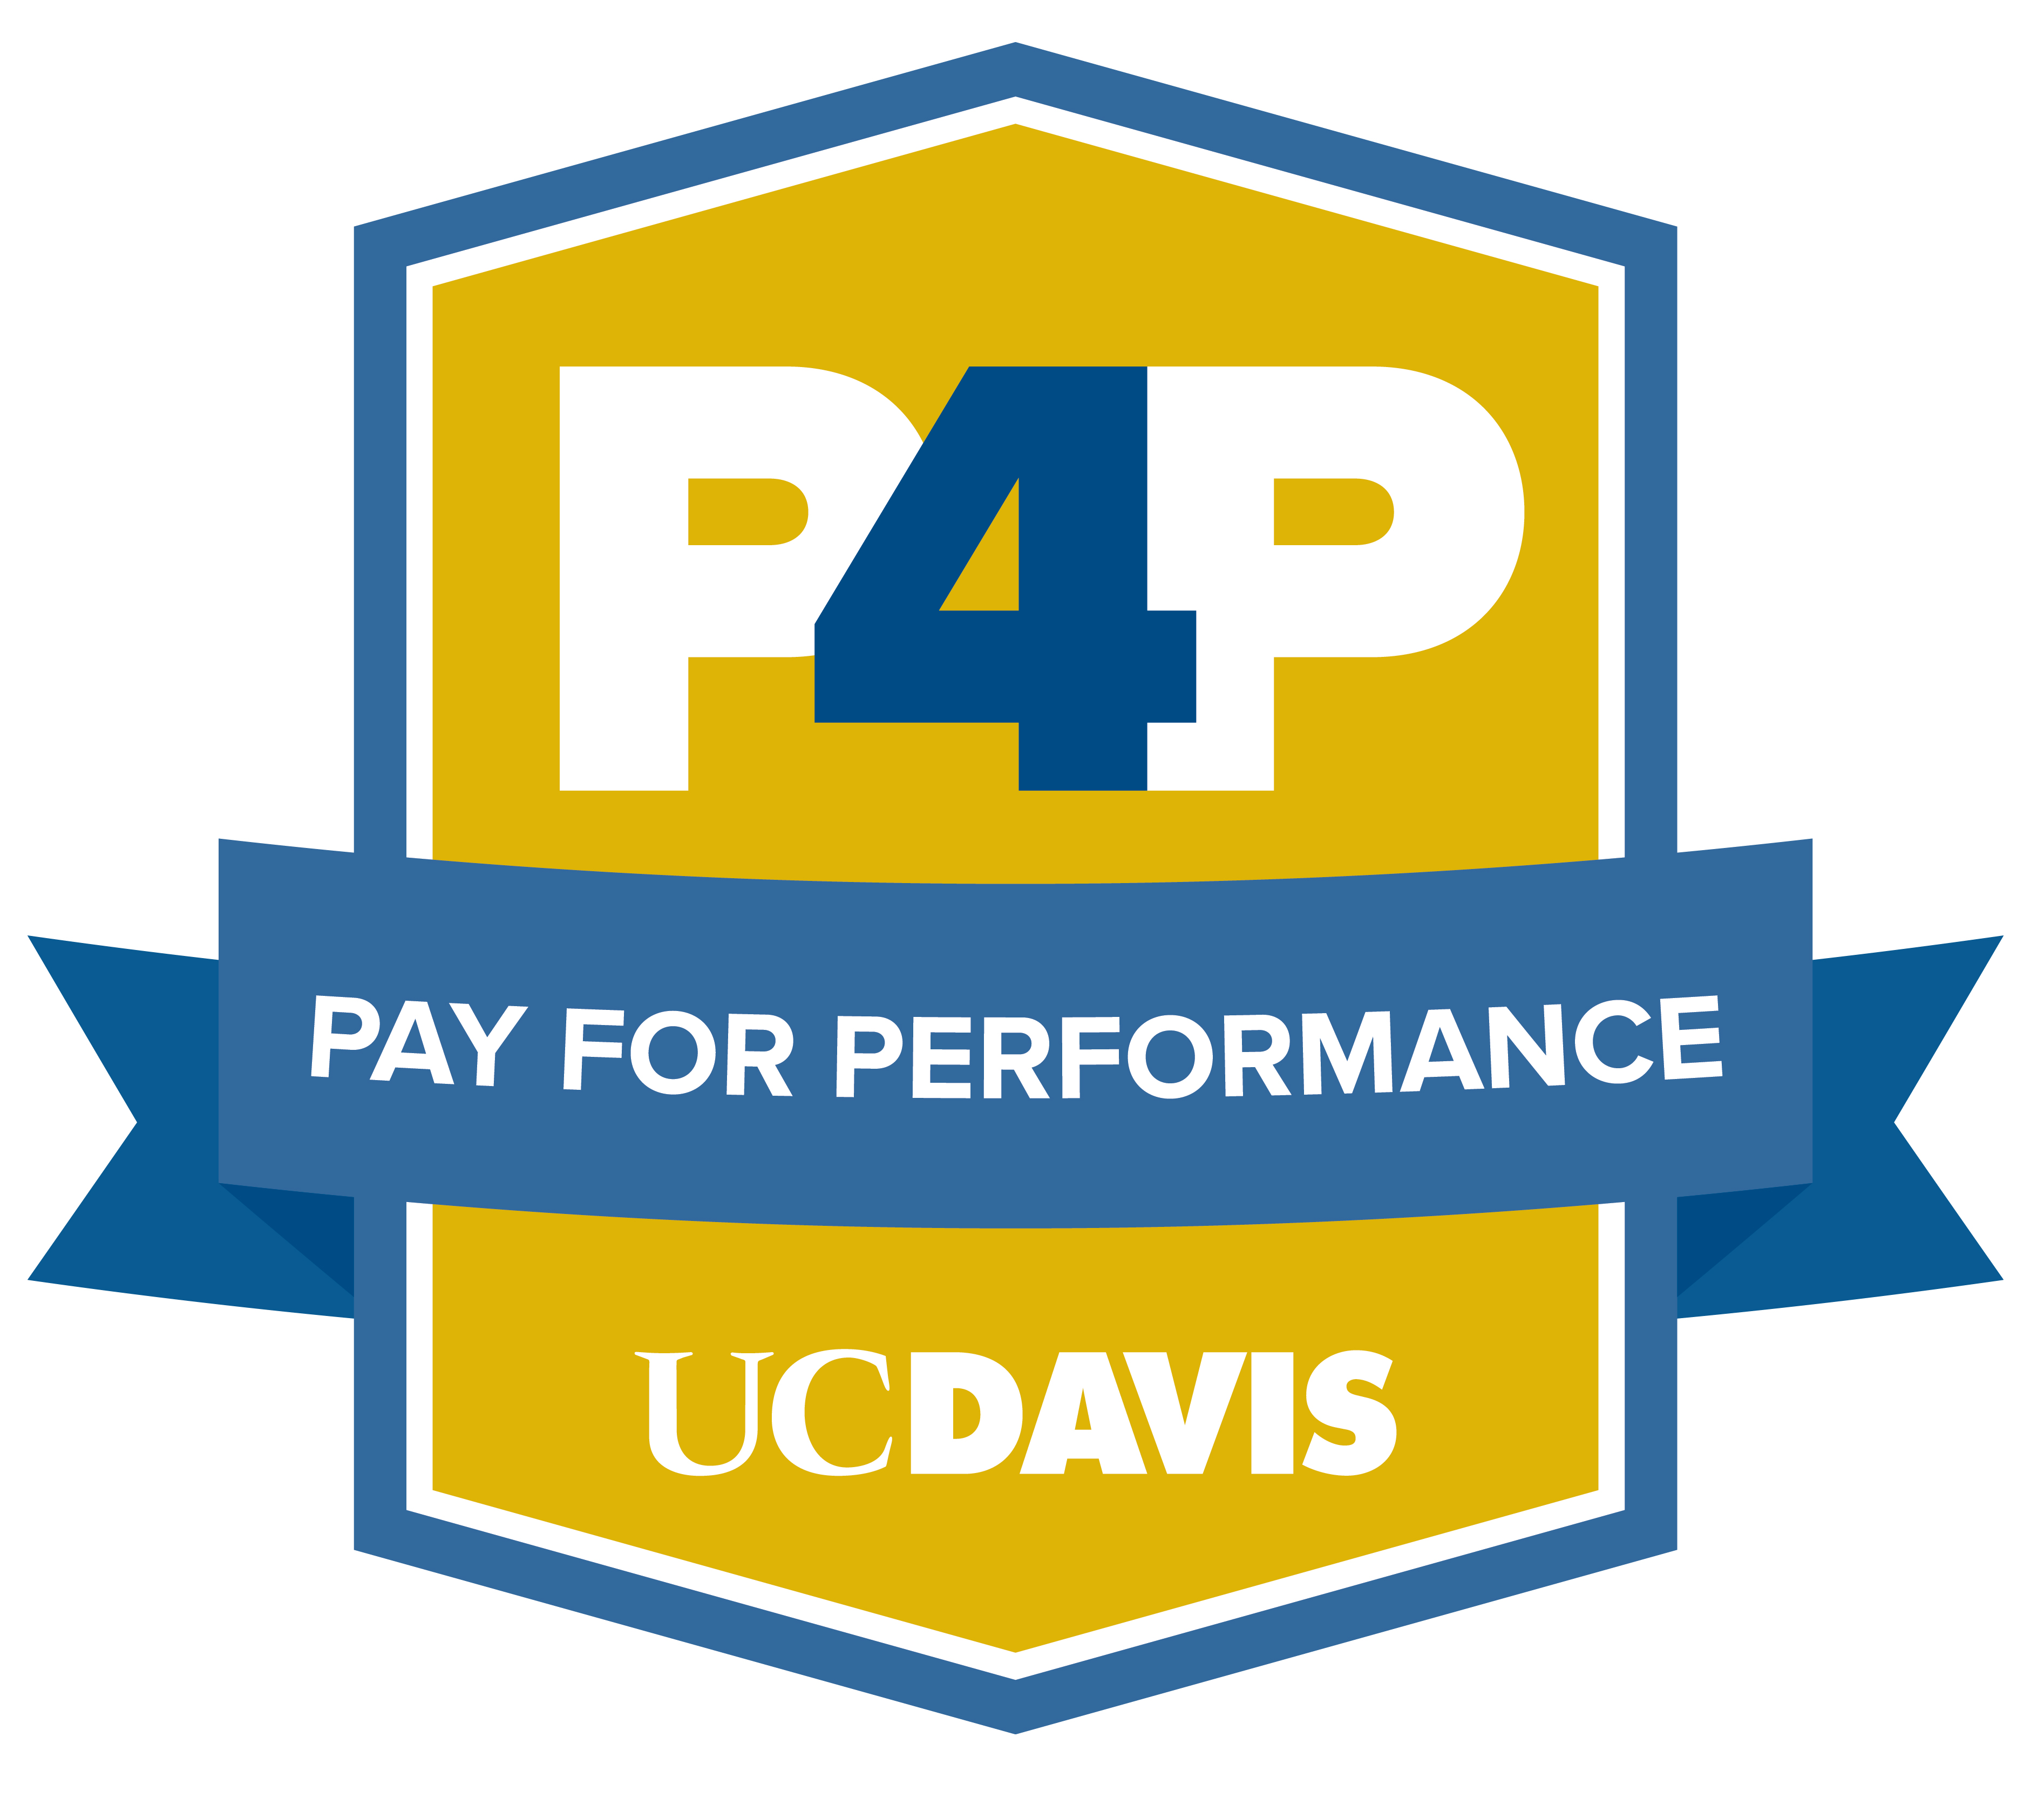 logo for uc davis pay for performance program